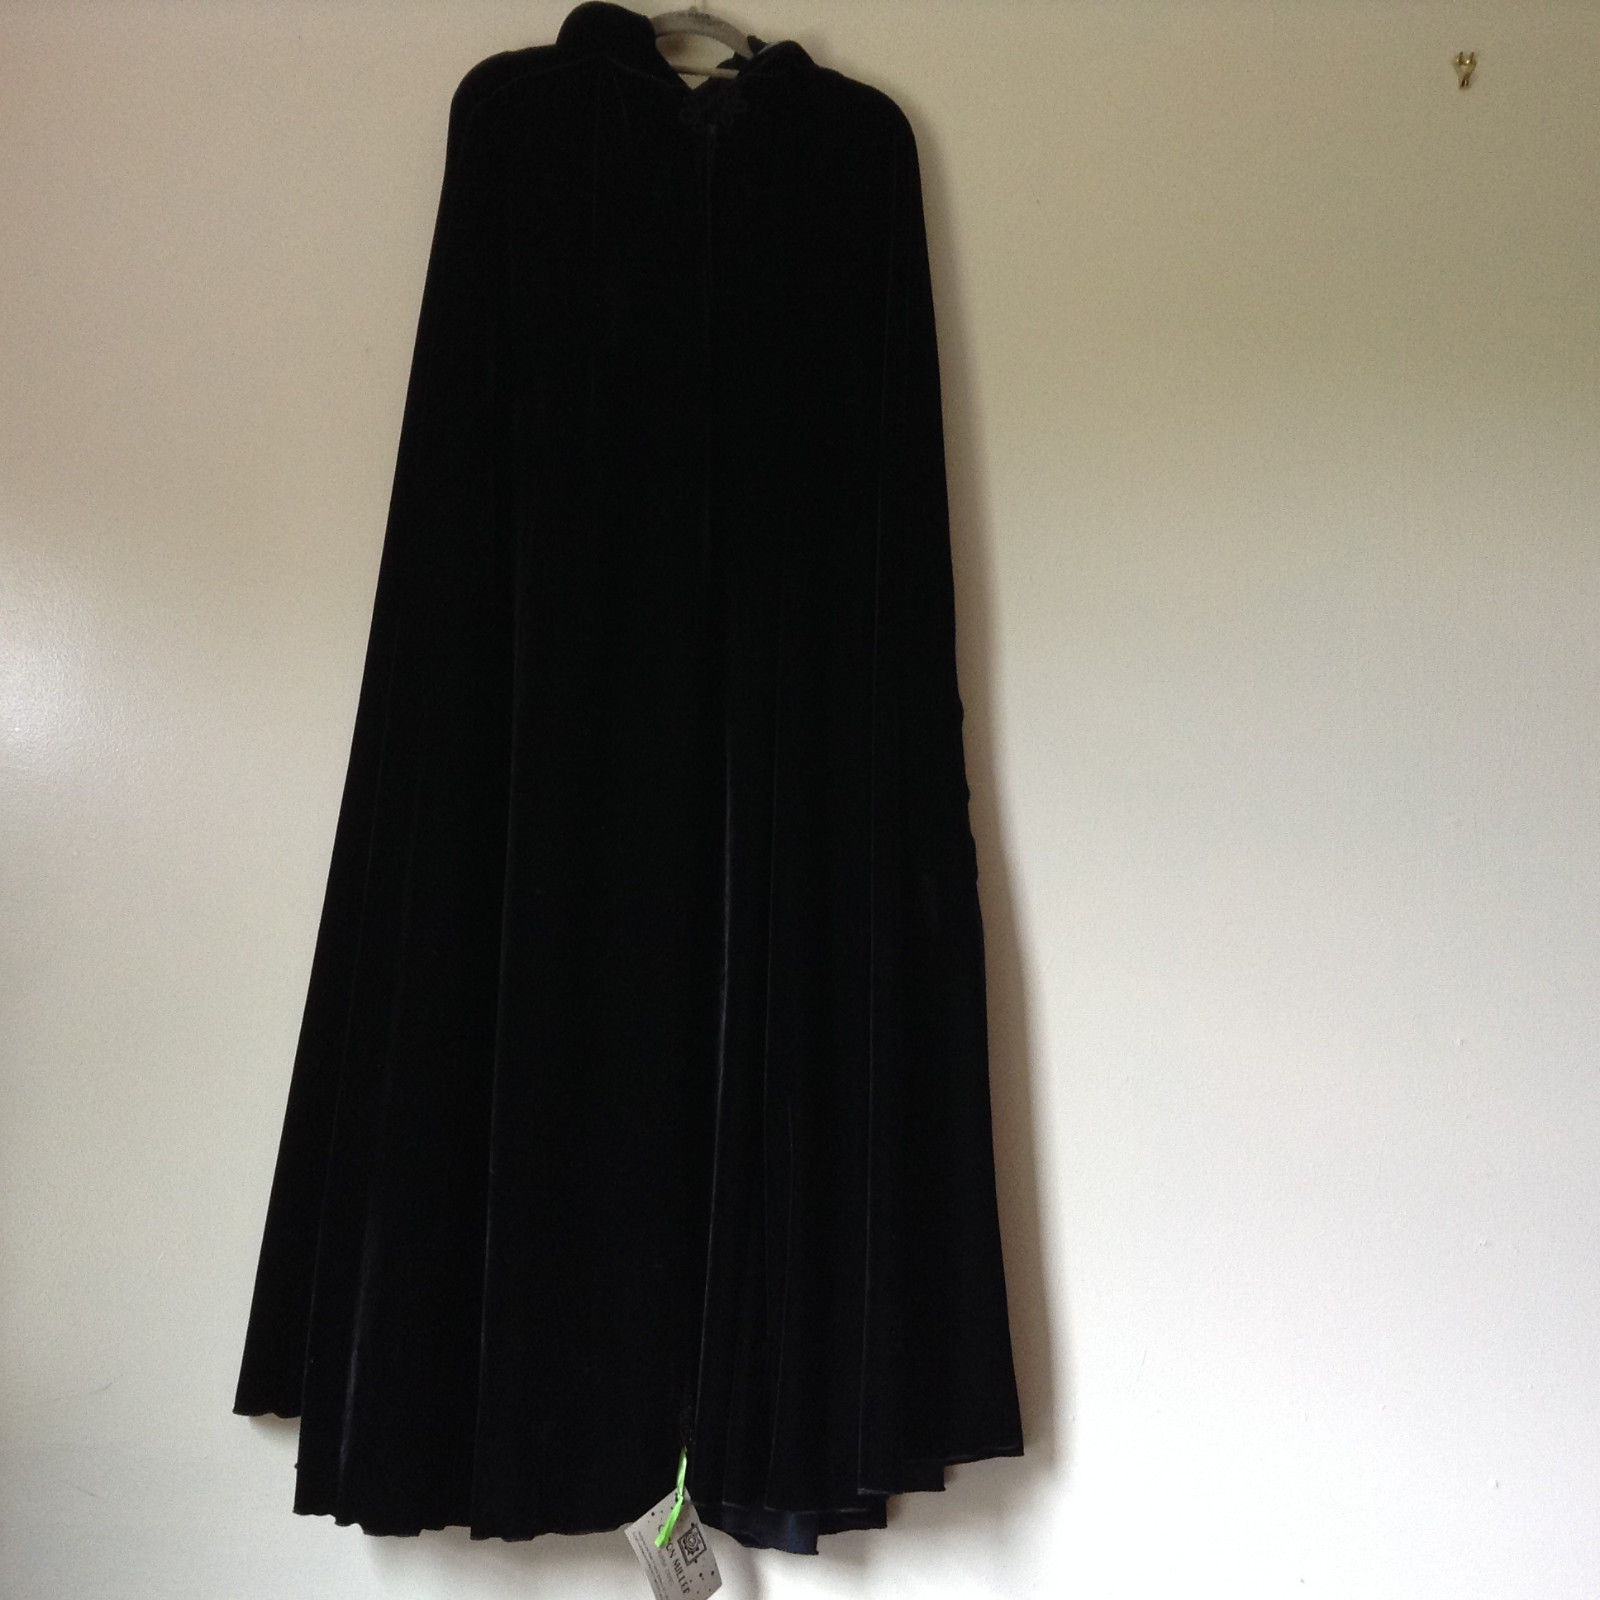 Caron Miller Ruana Capes Black Velour Cape with Hood Measurements Below